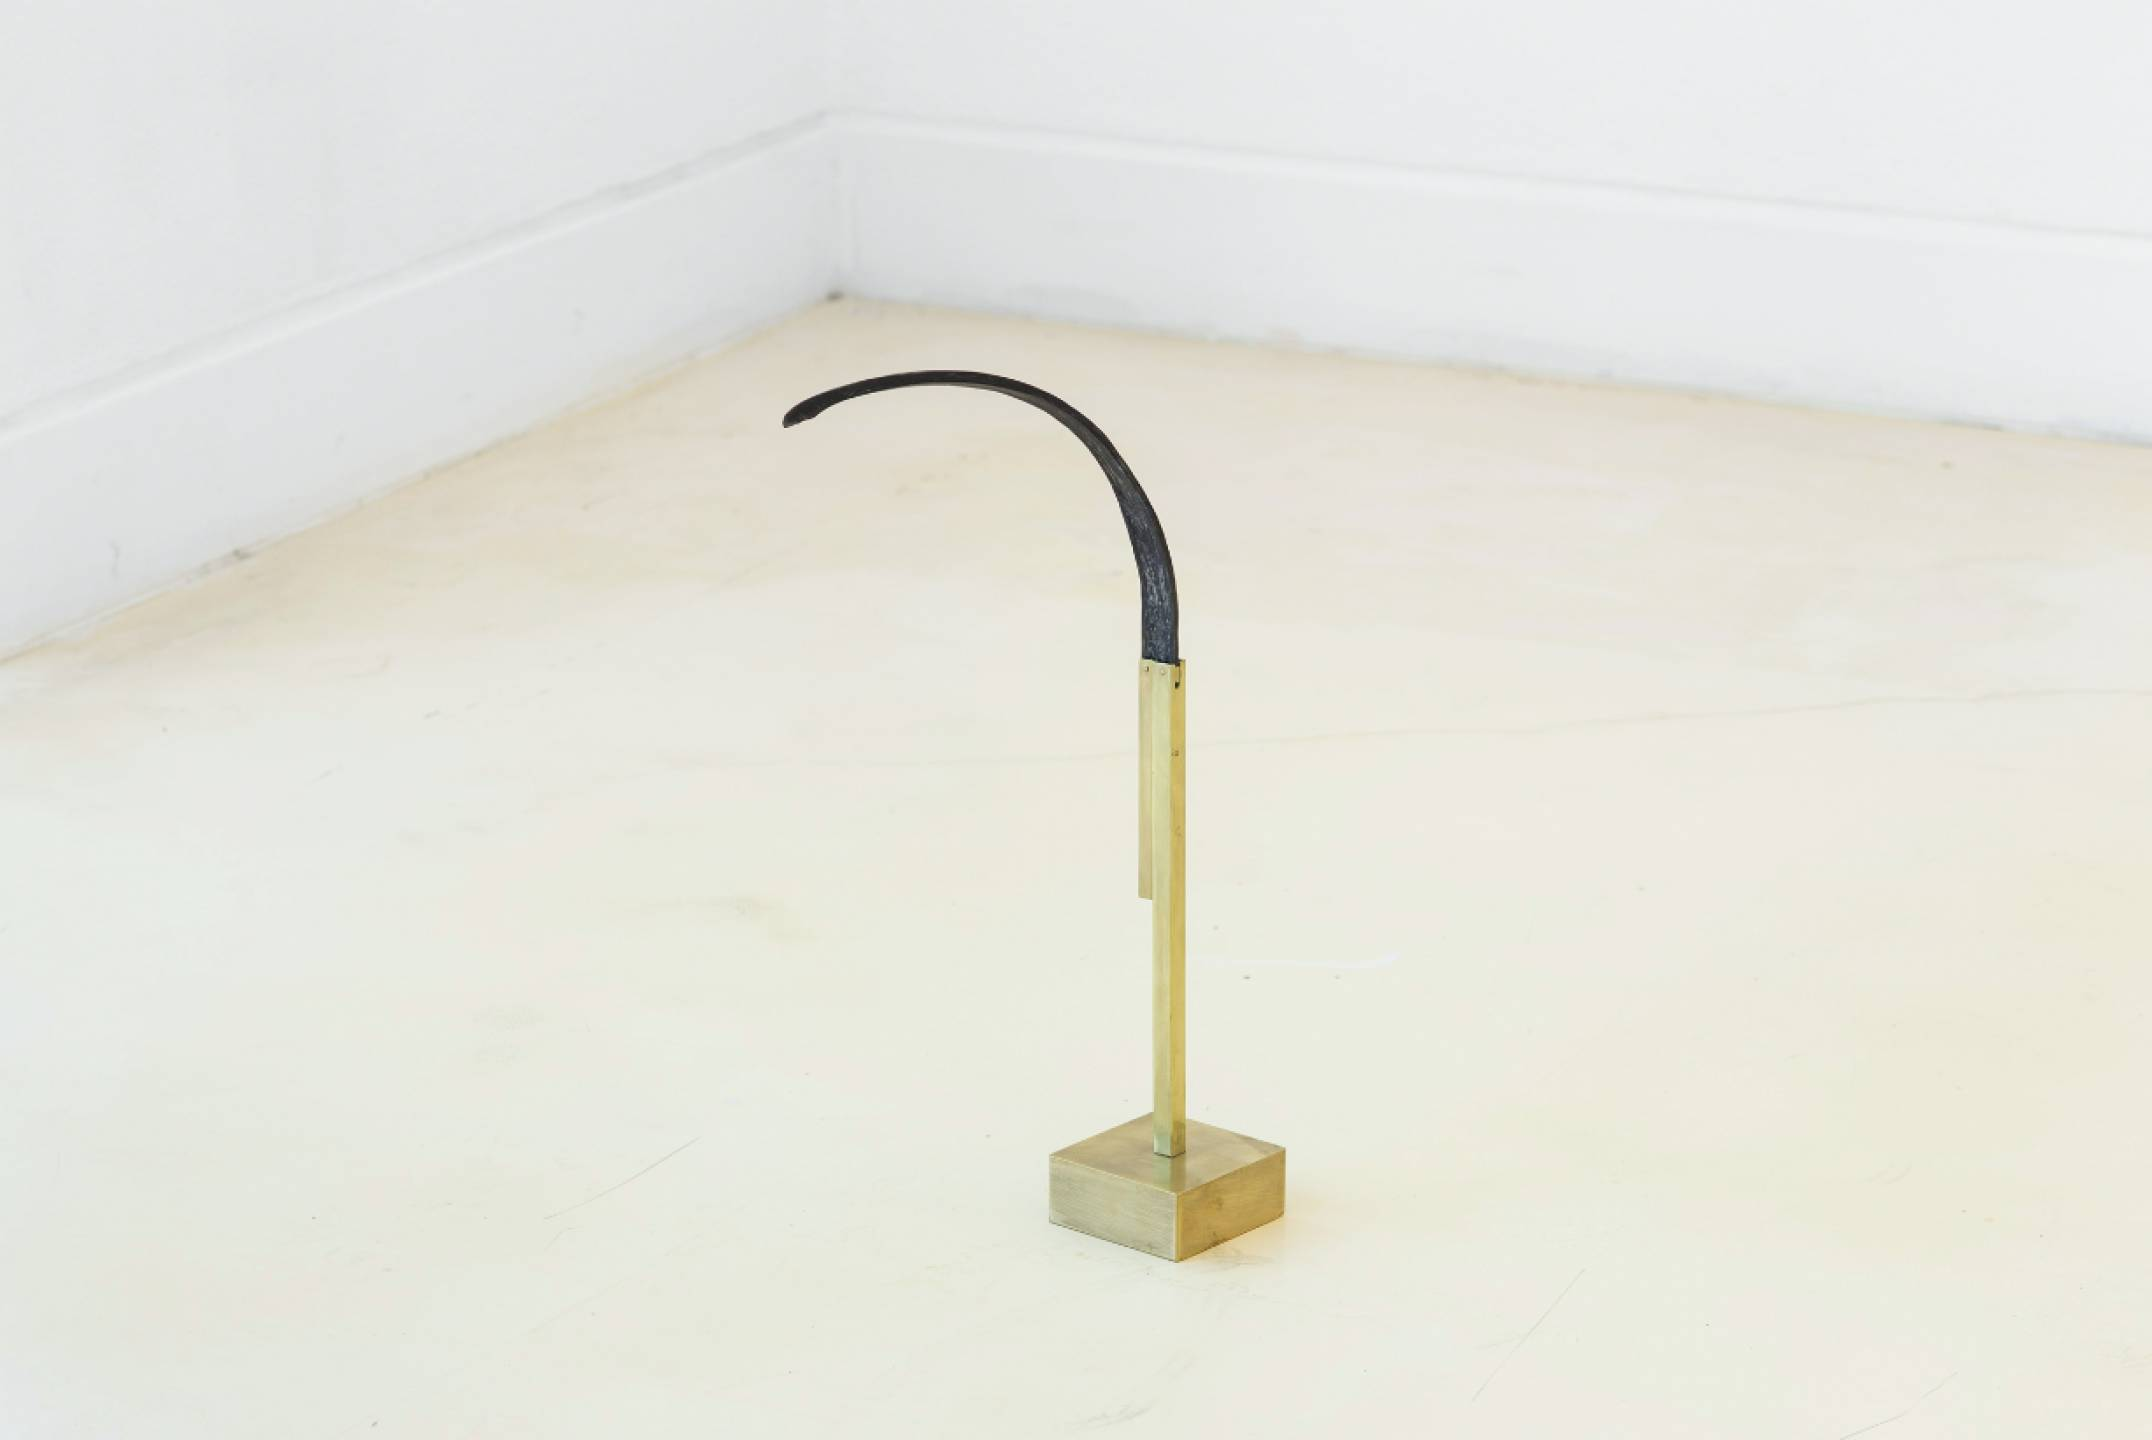 Paloma Bosquê, <em>The Hollow and The Seam,</em> Pavilhão Branco – Museu da Cidade, Lisbon, 2017 - Mendes Wood DM